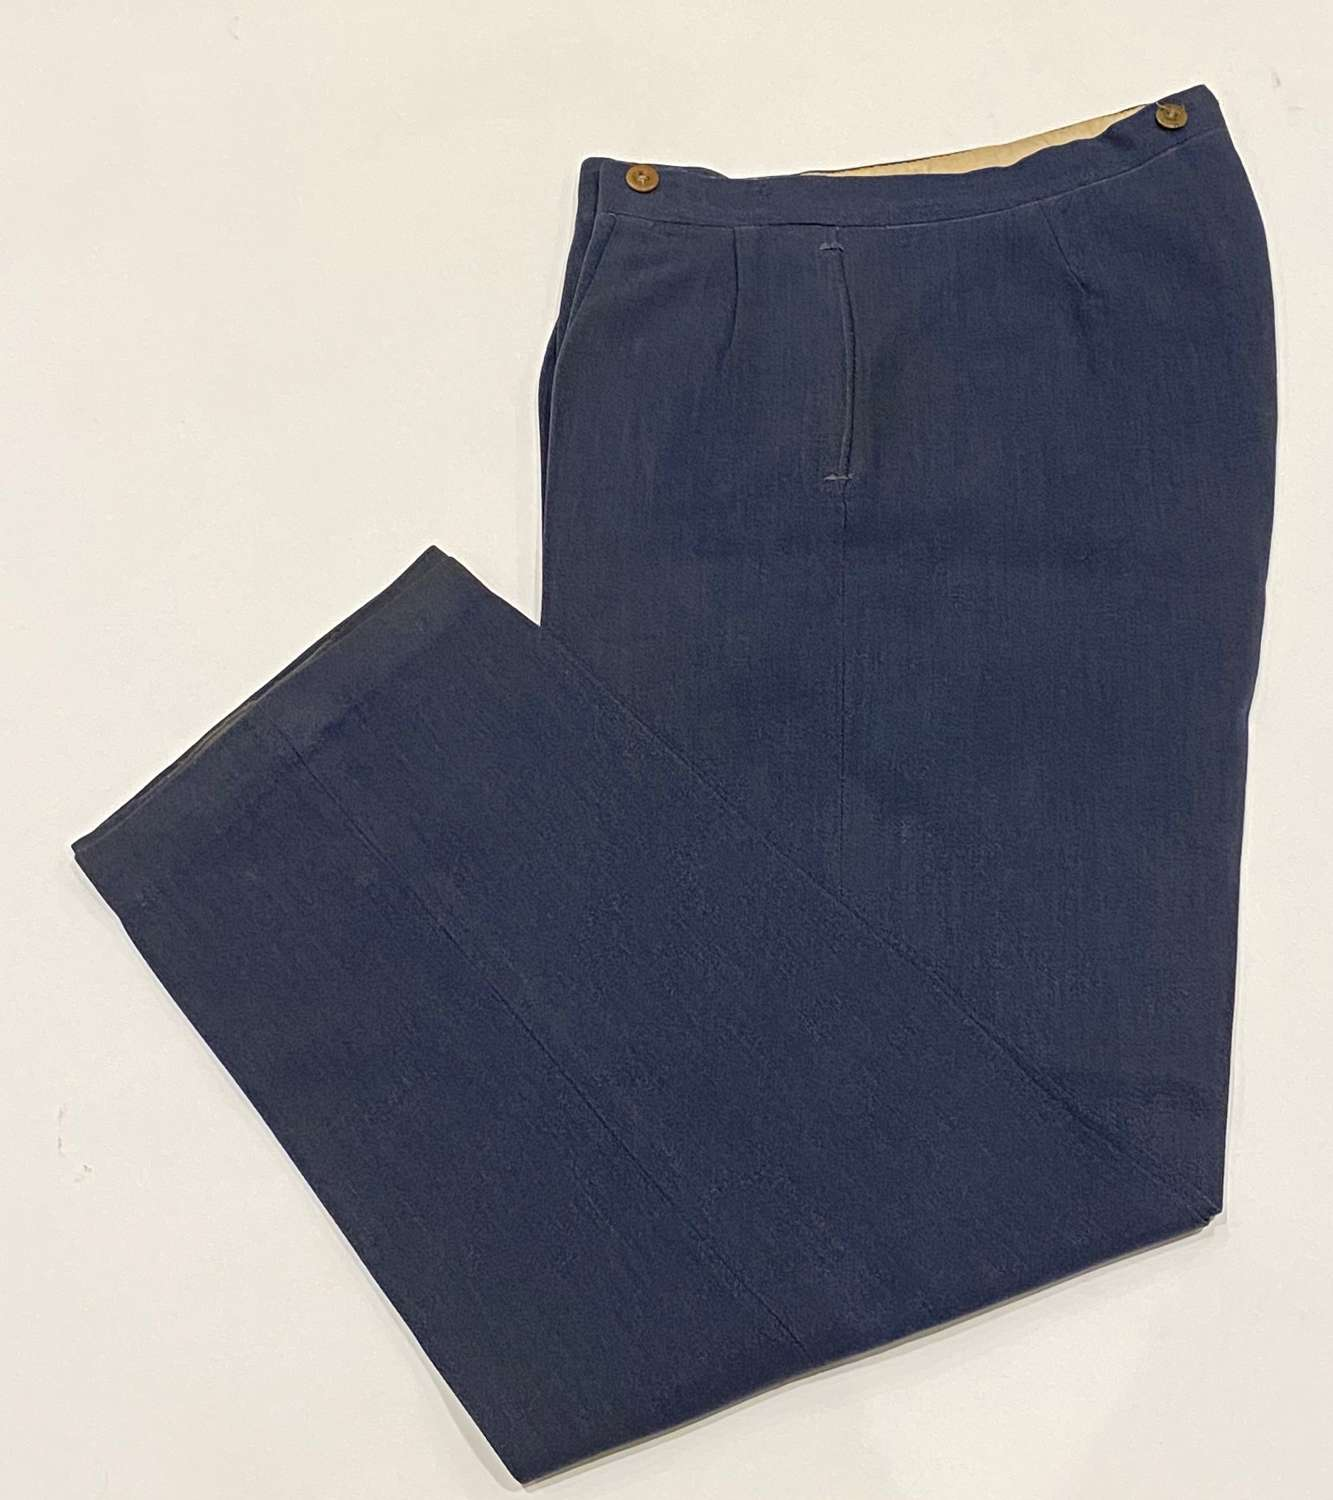 WW2 Period RAF Officer's Trousers